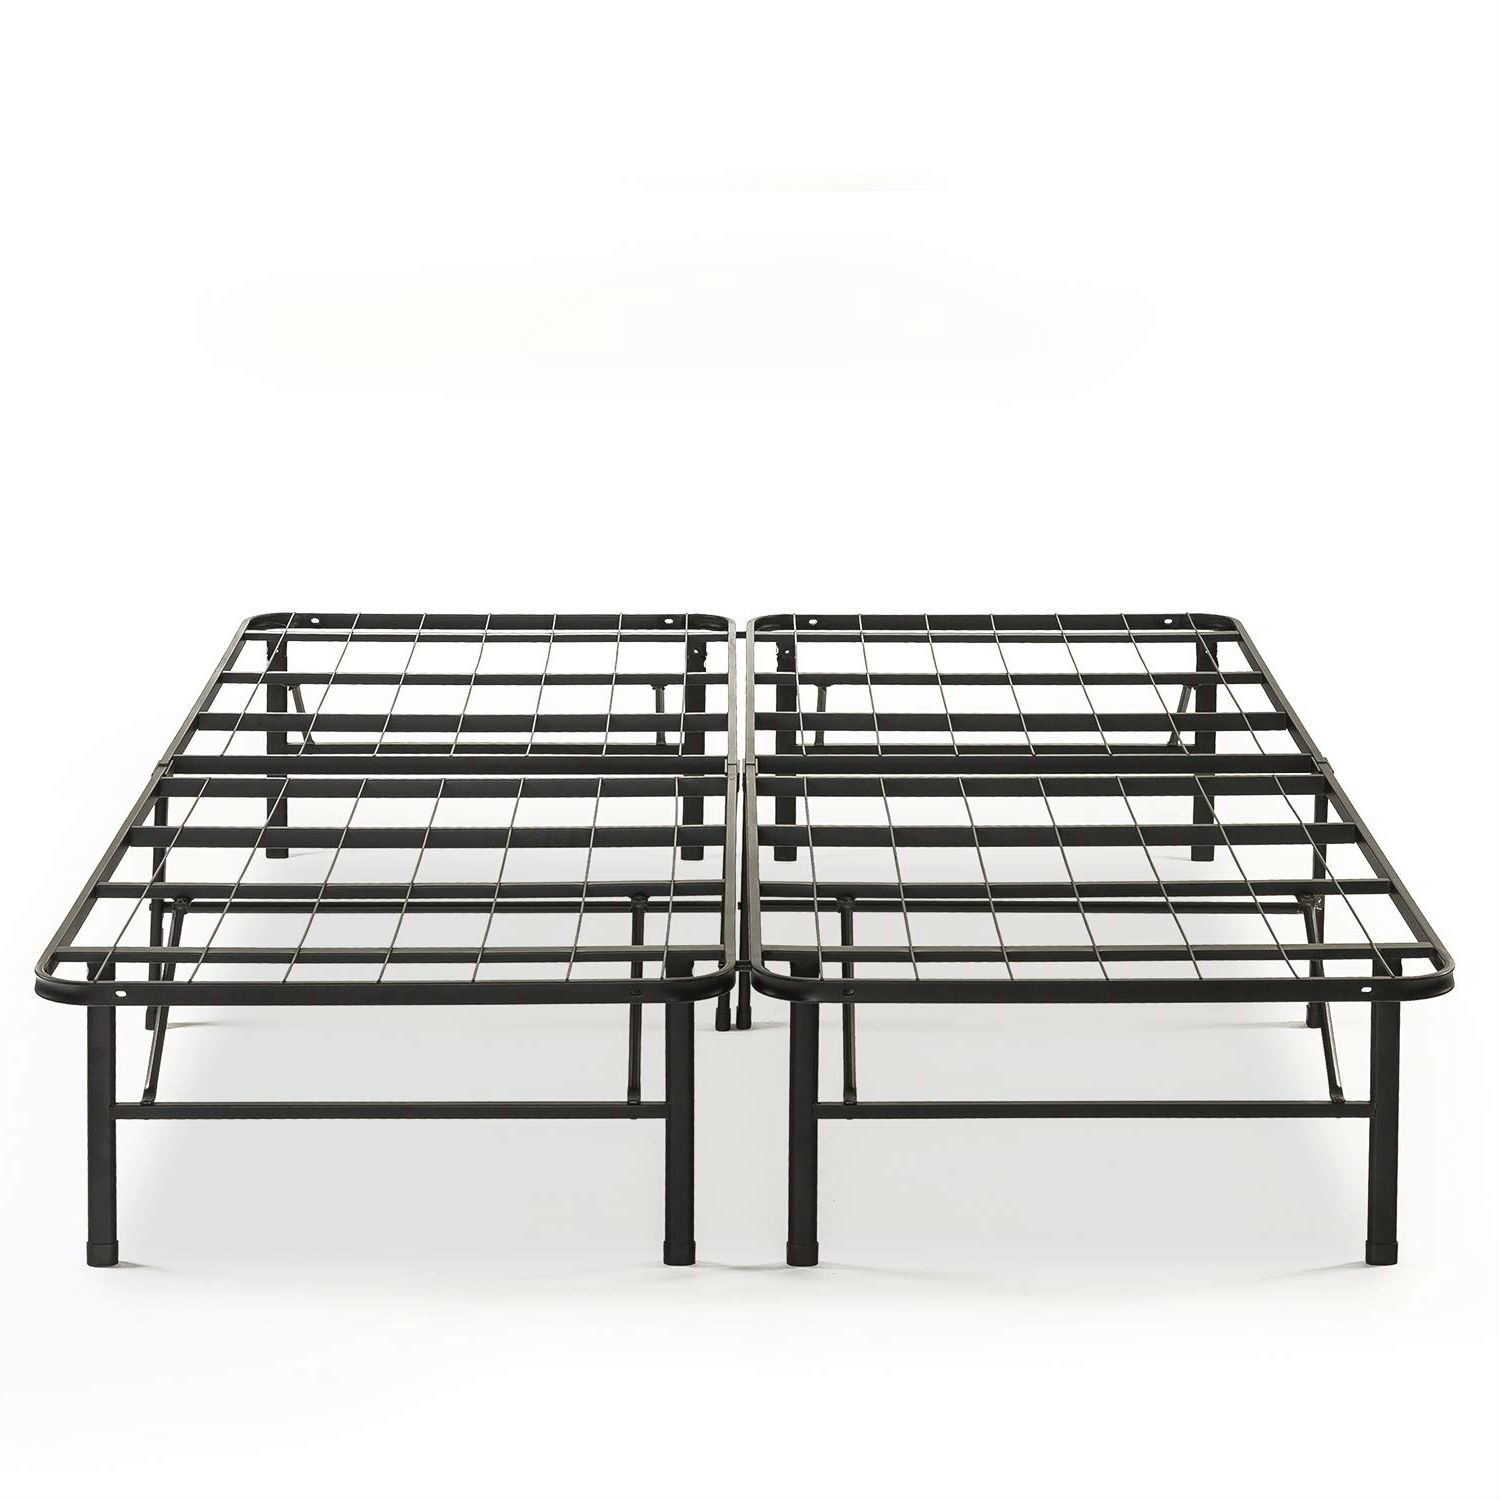 Queen size Folding Sturdy Metal Platform Bed Frame with